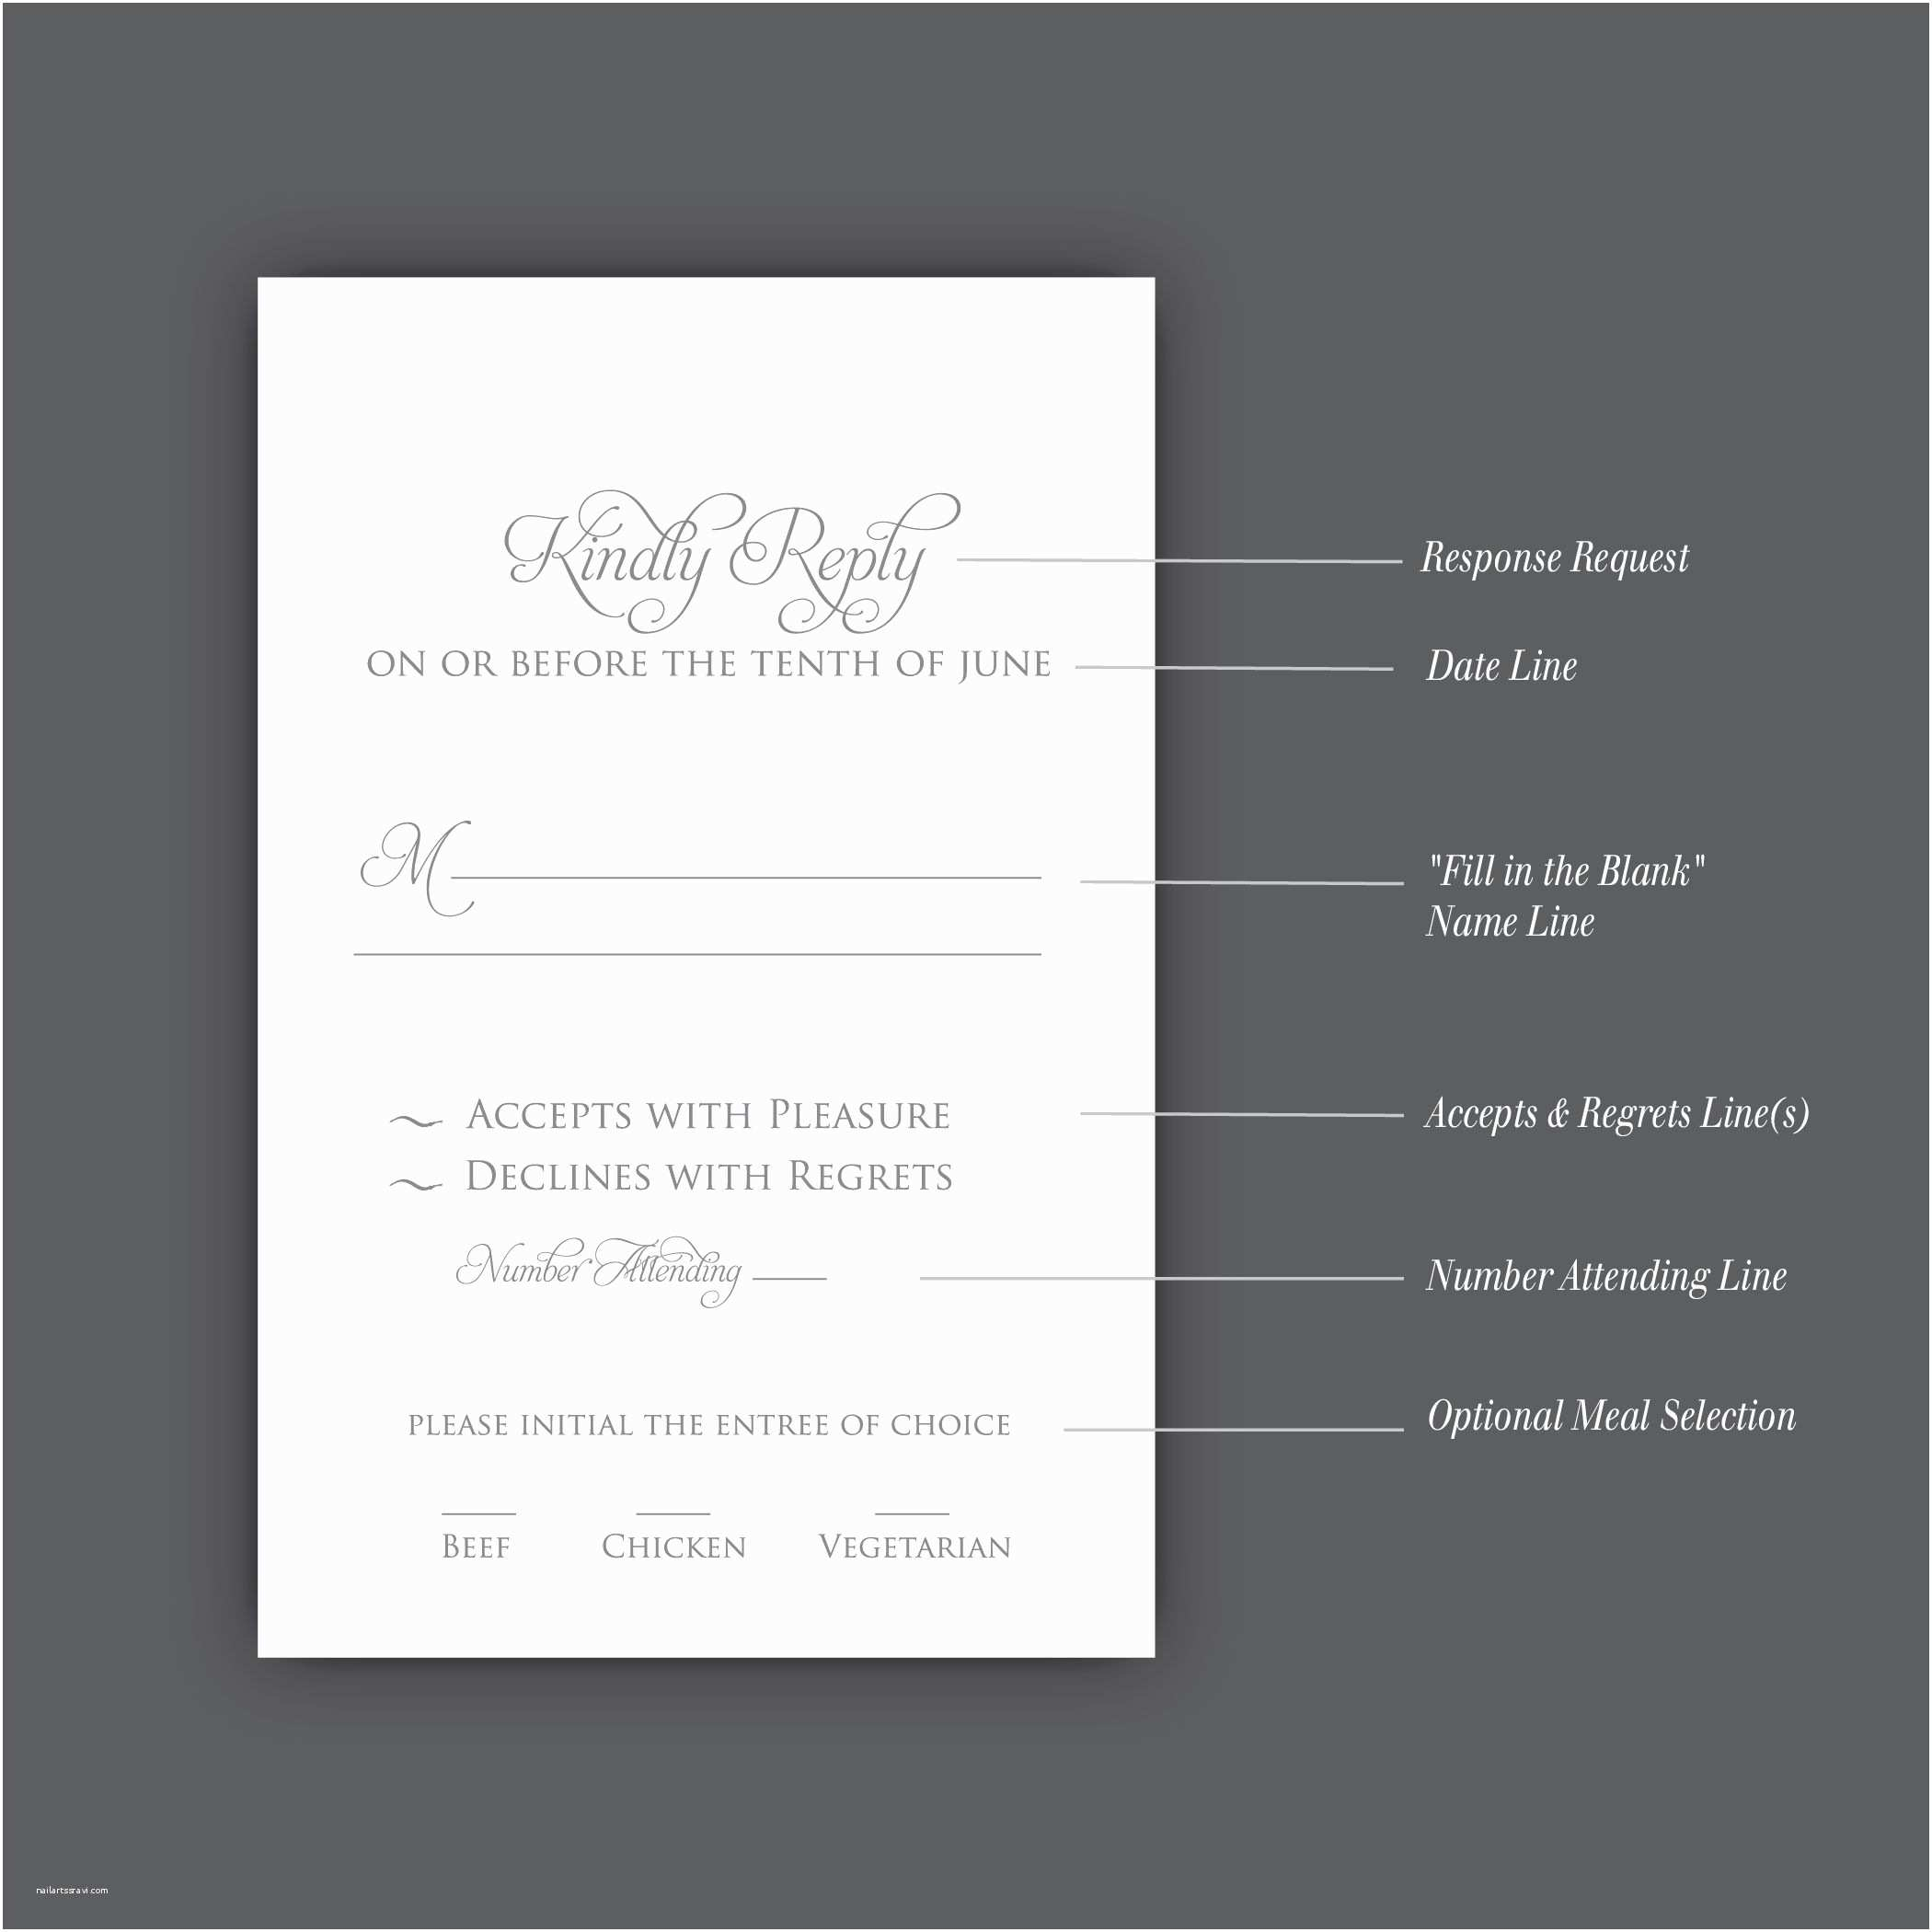 How to Rsvp for Wedding Invitation How to Correctly Word Your Wedding Rsvp Card